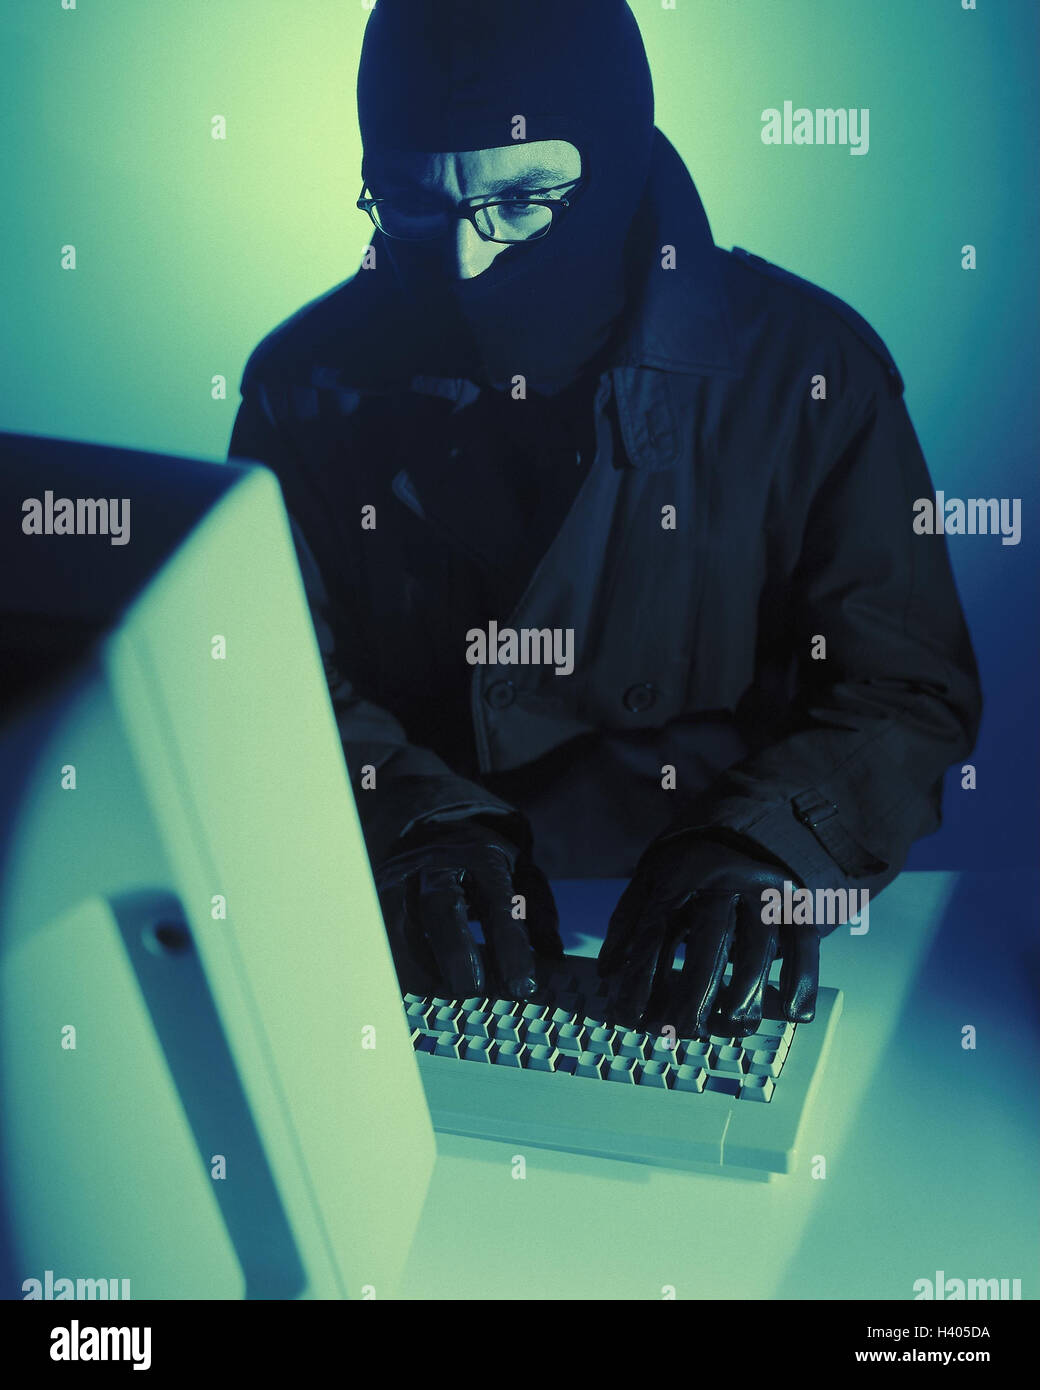 Hackers, icon, computer crime, illegally, user, computer expert, knowledge, talent, illegitimate, computer criminal - Stock Image